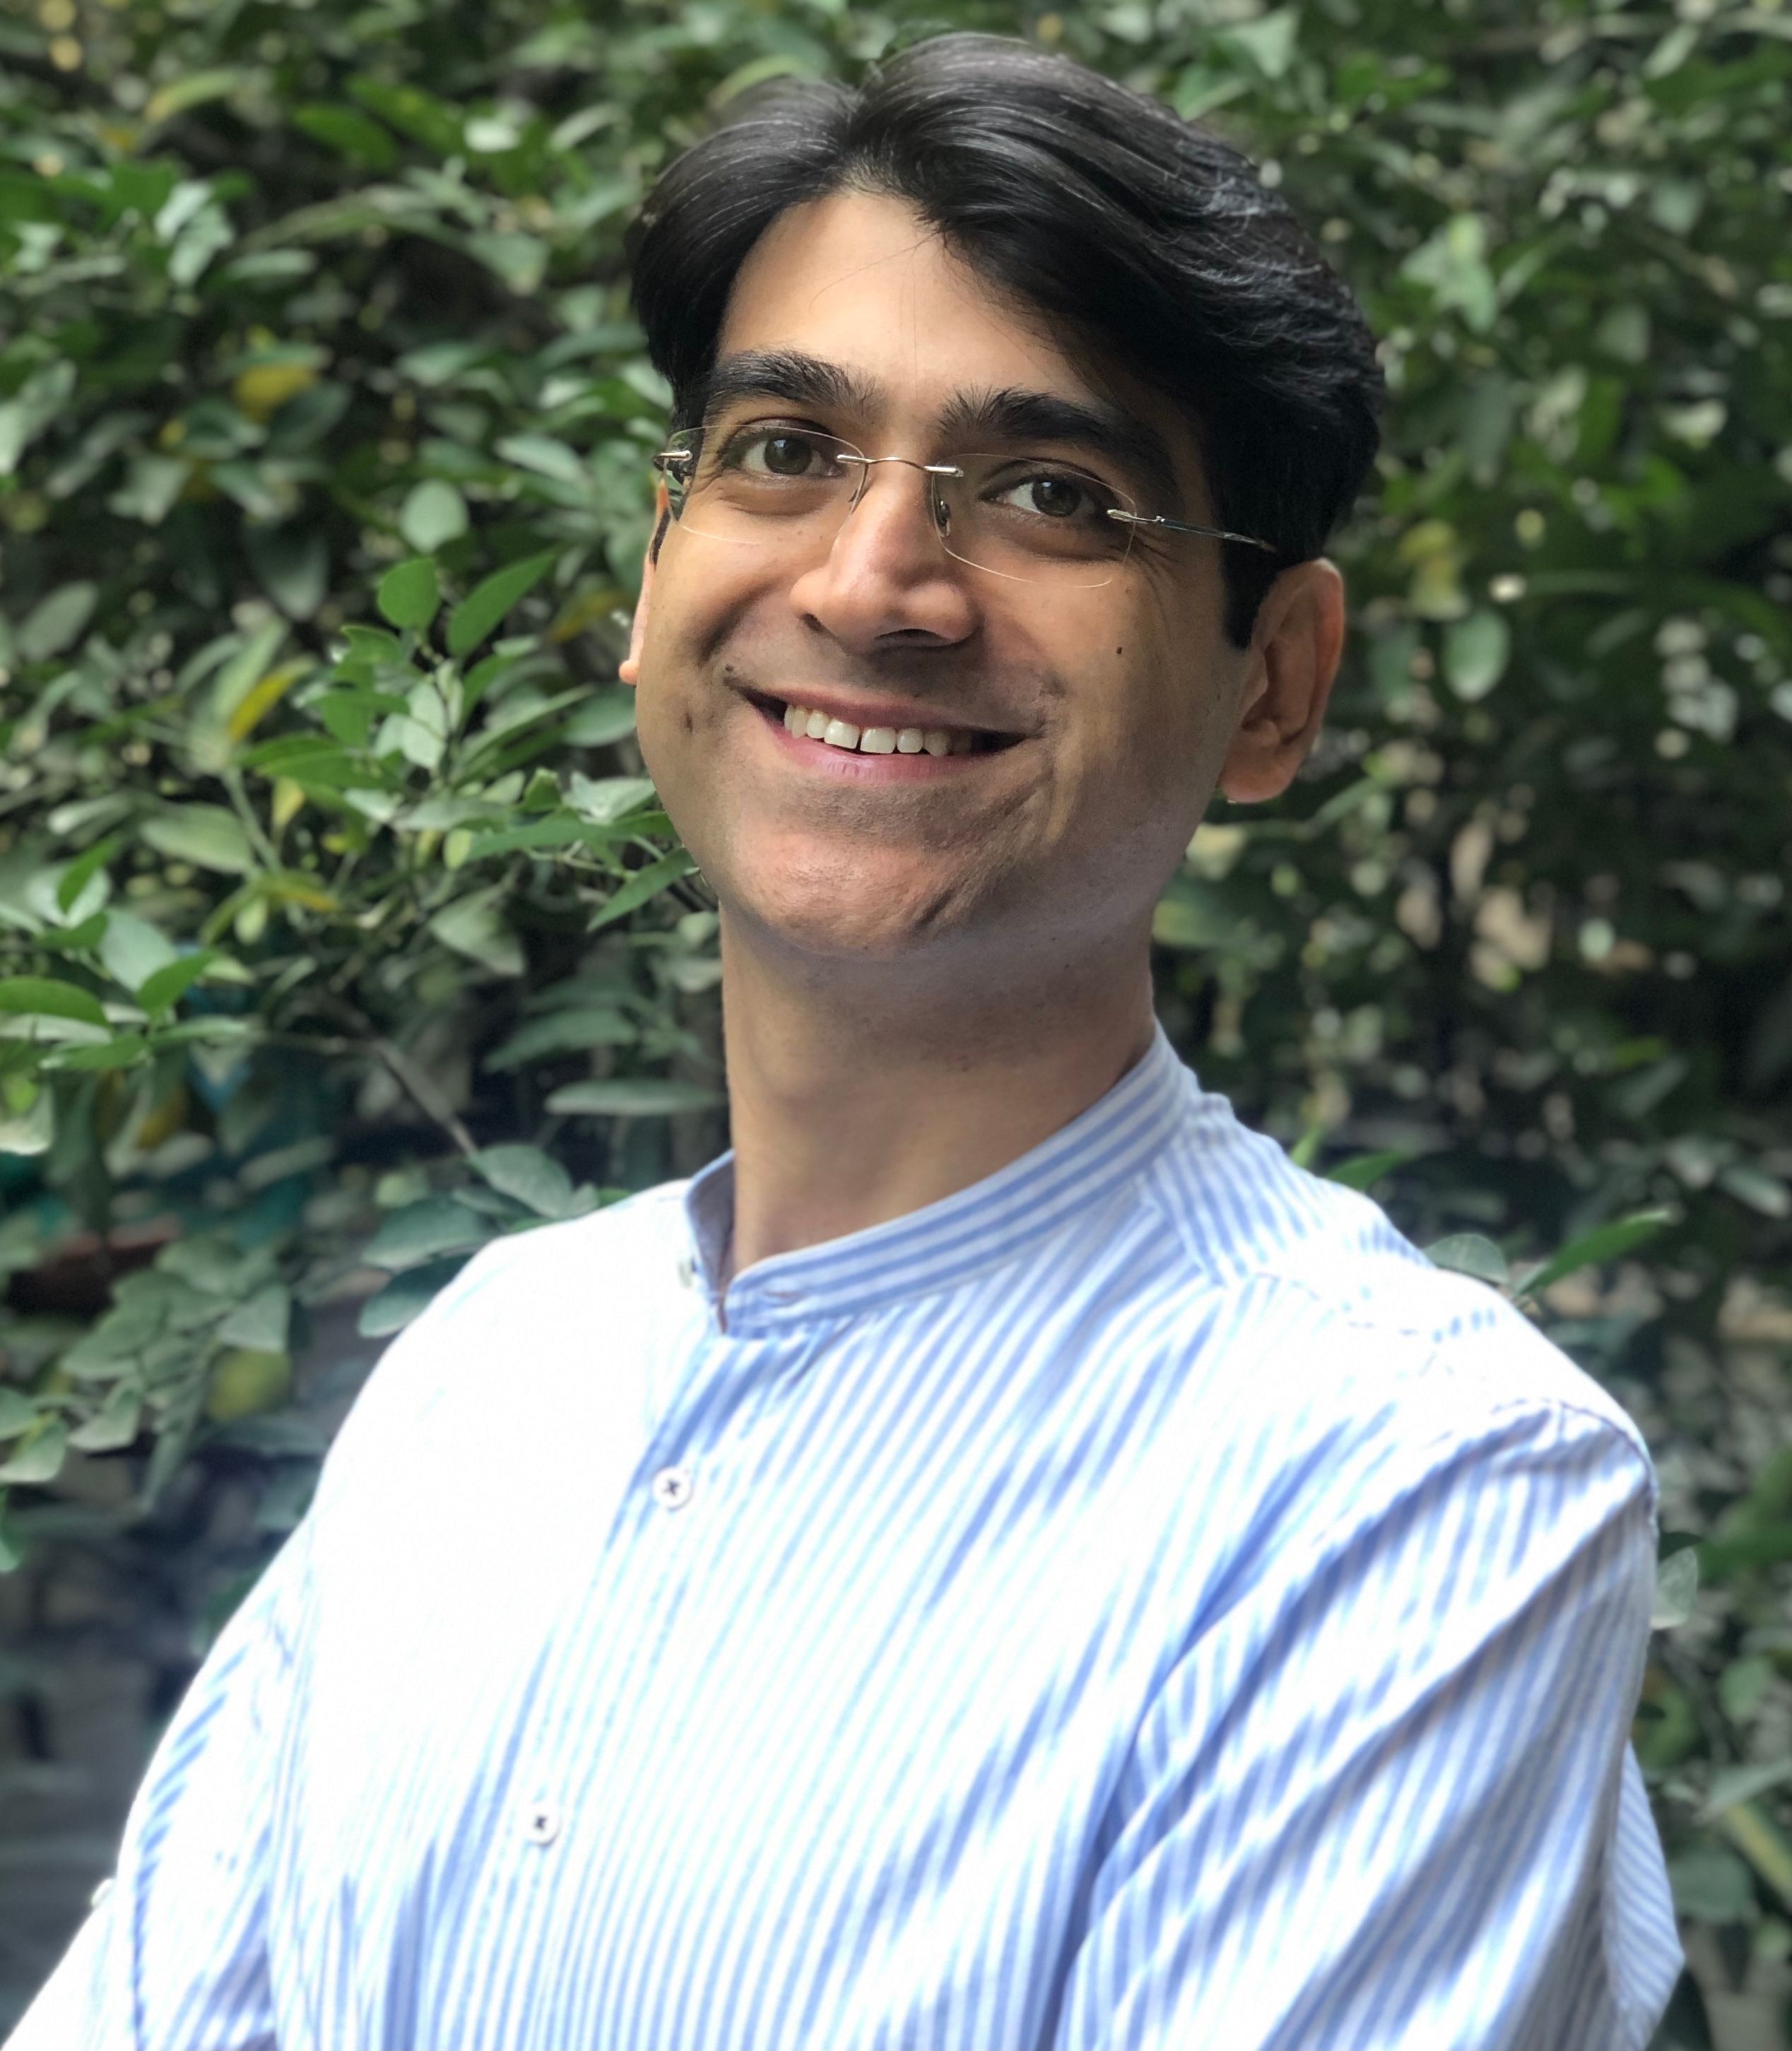 A photo of Mayank Khanduja